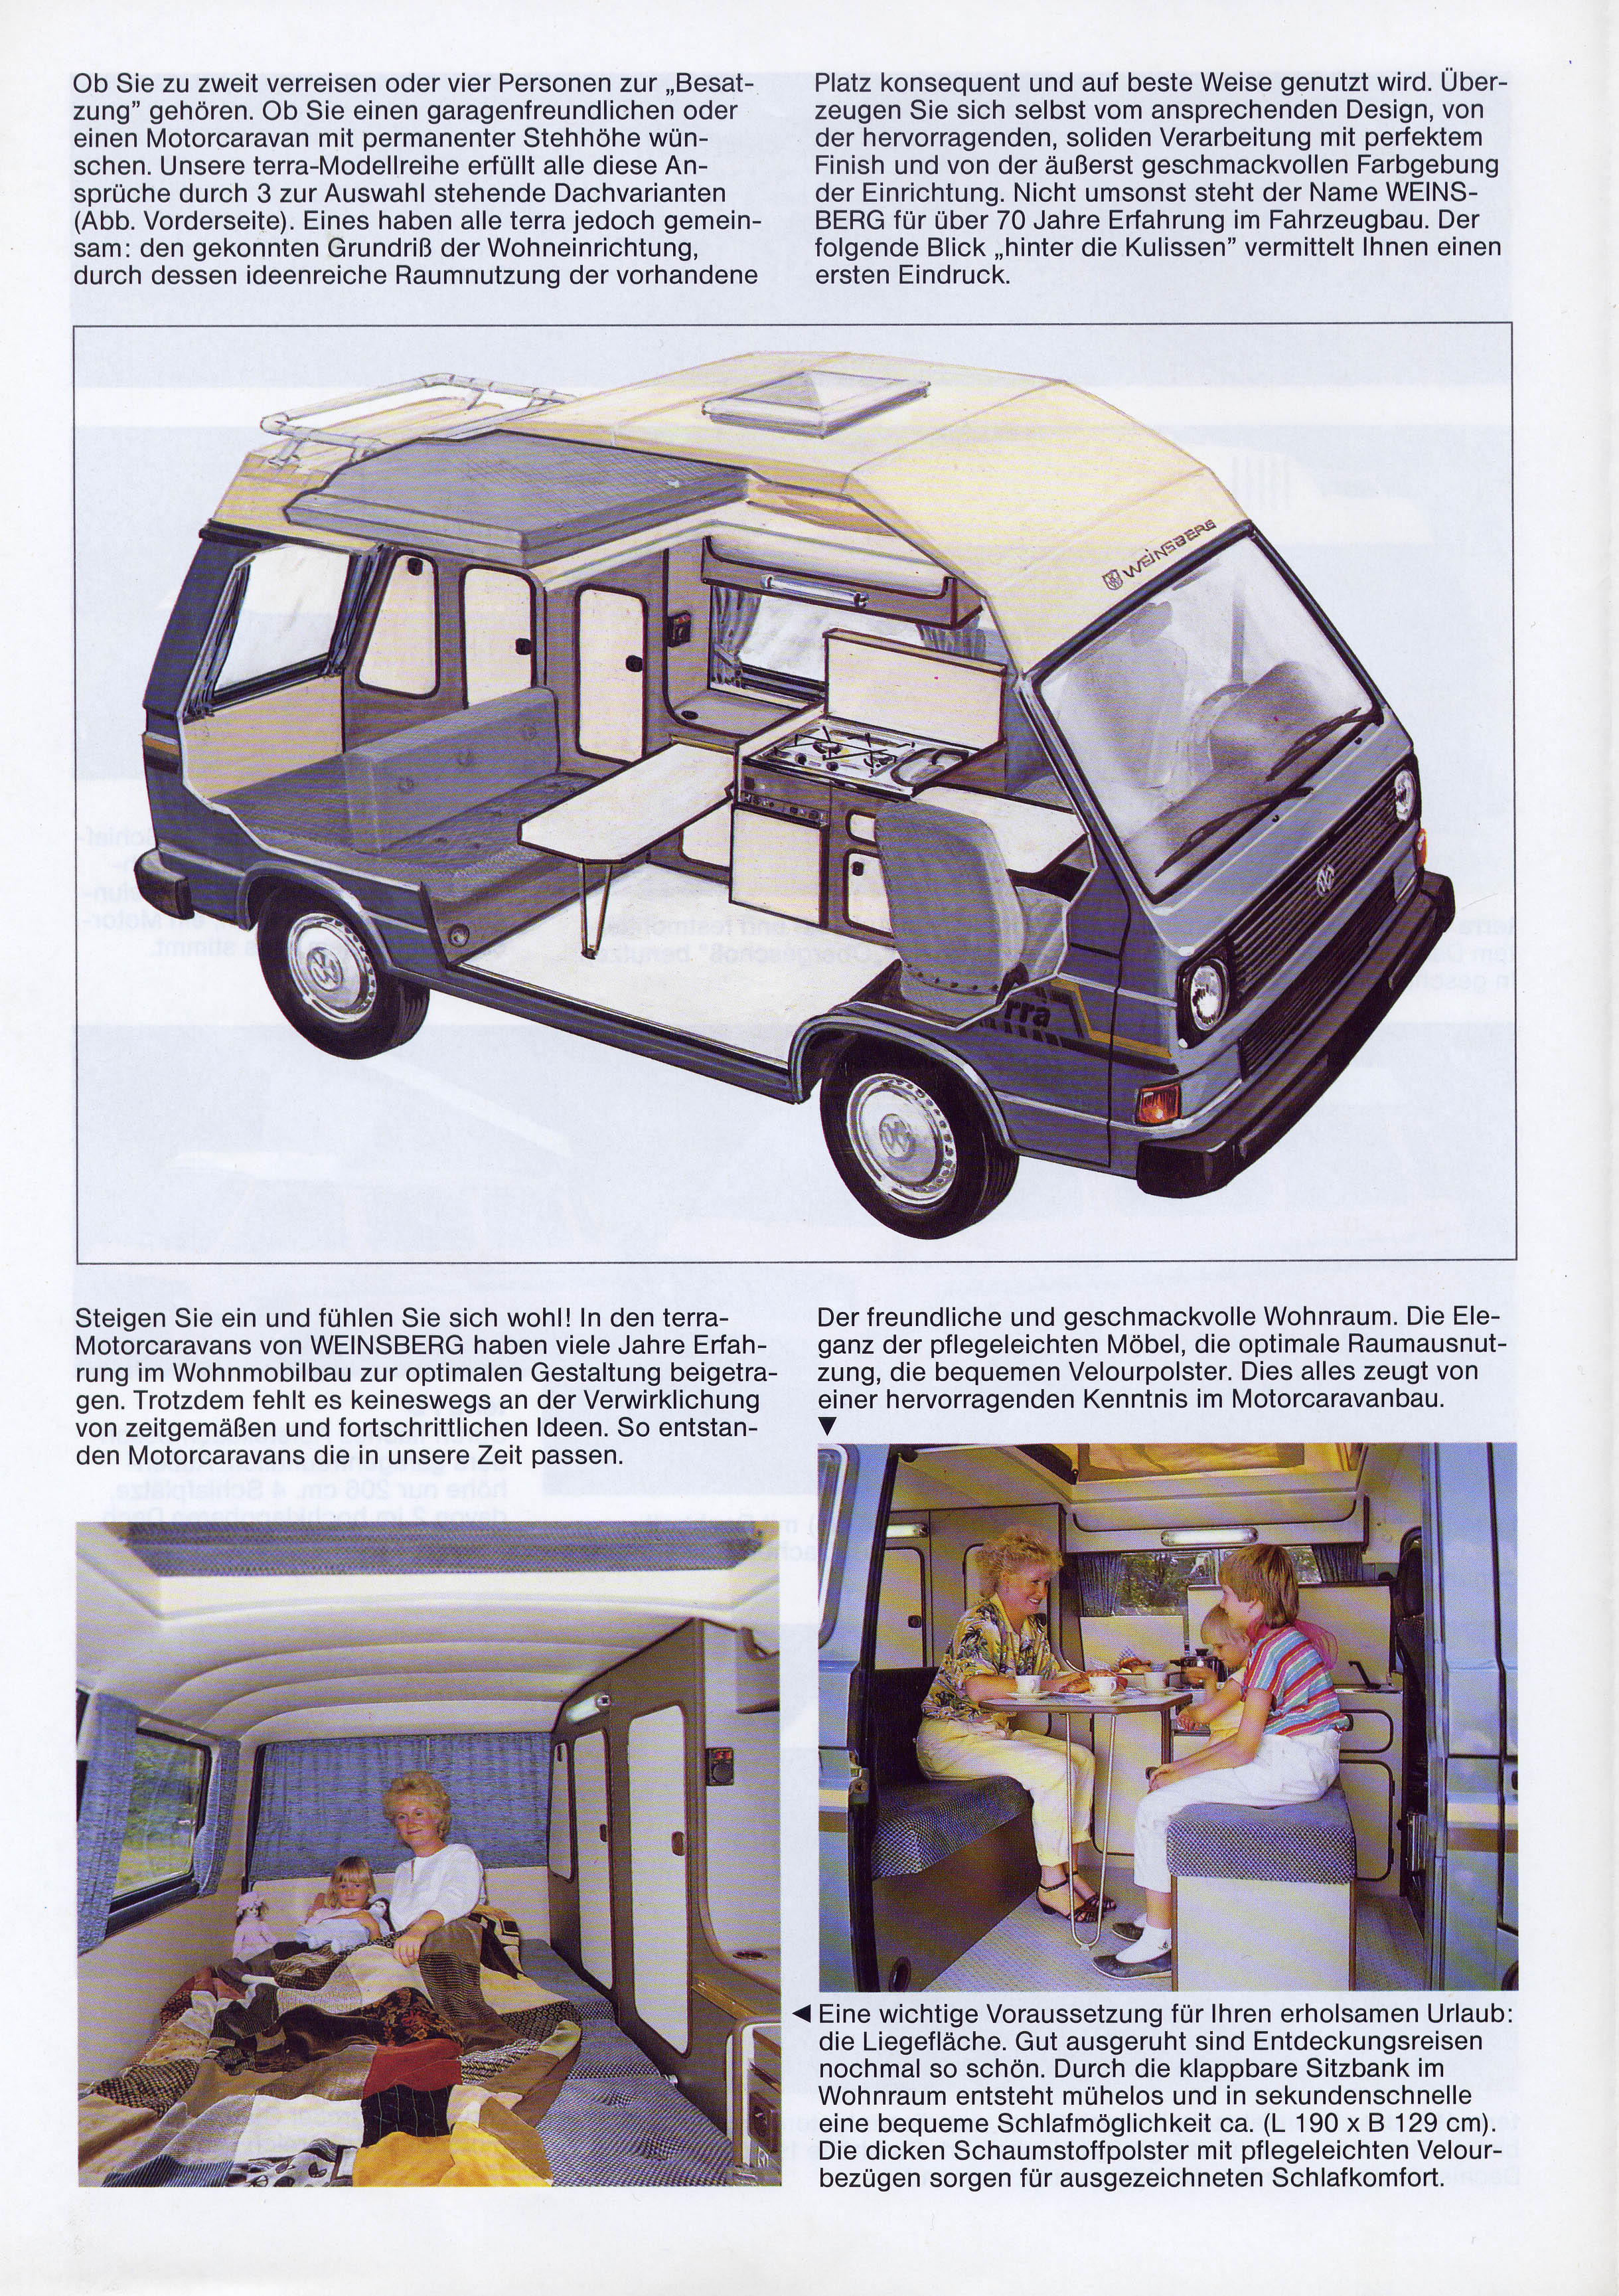 Ford Flex Clamshell Upal Auto Tent from Starling Travel | Starling ...